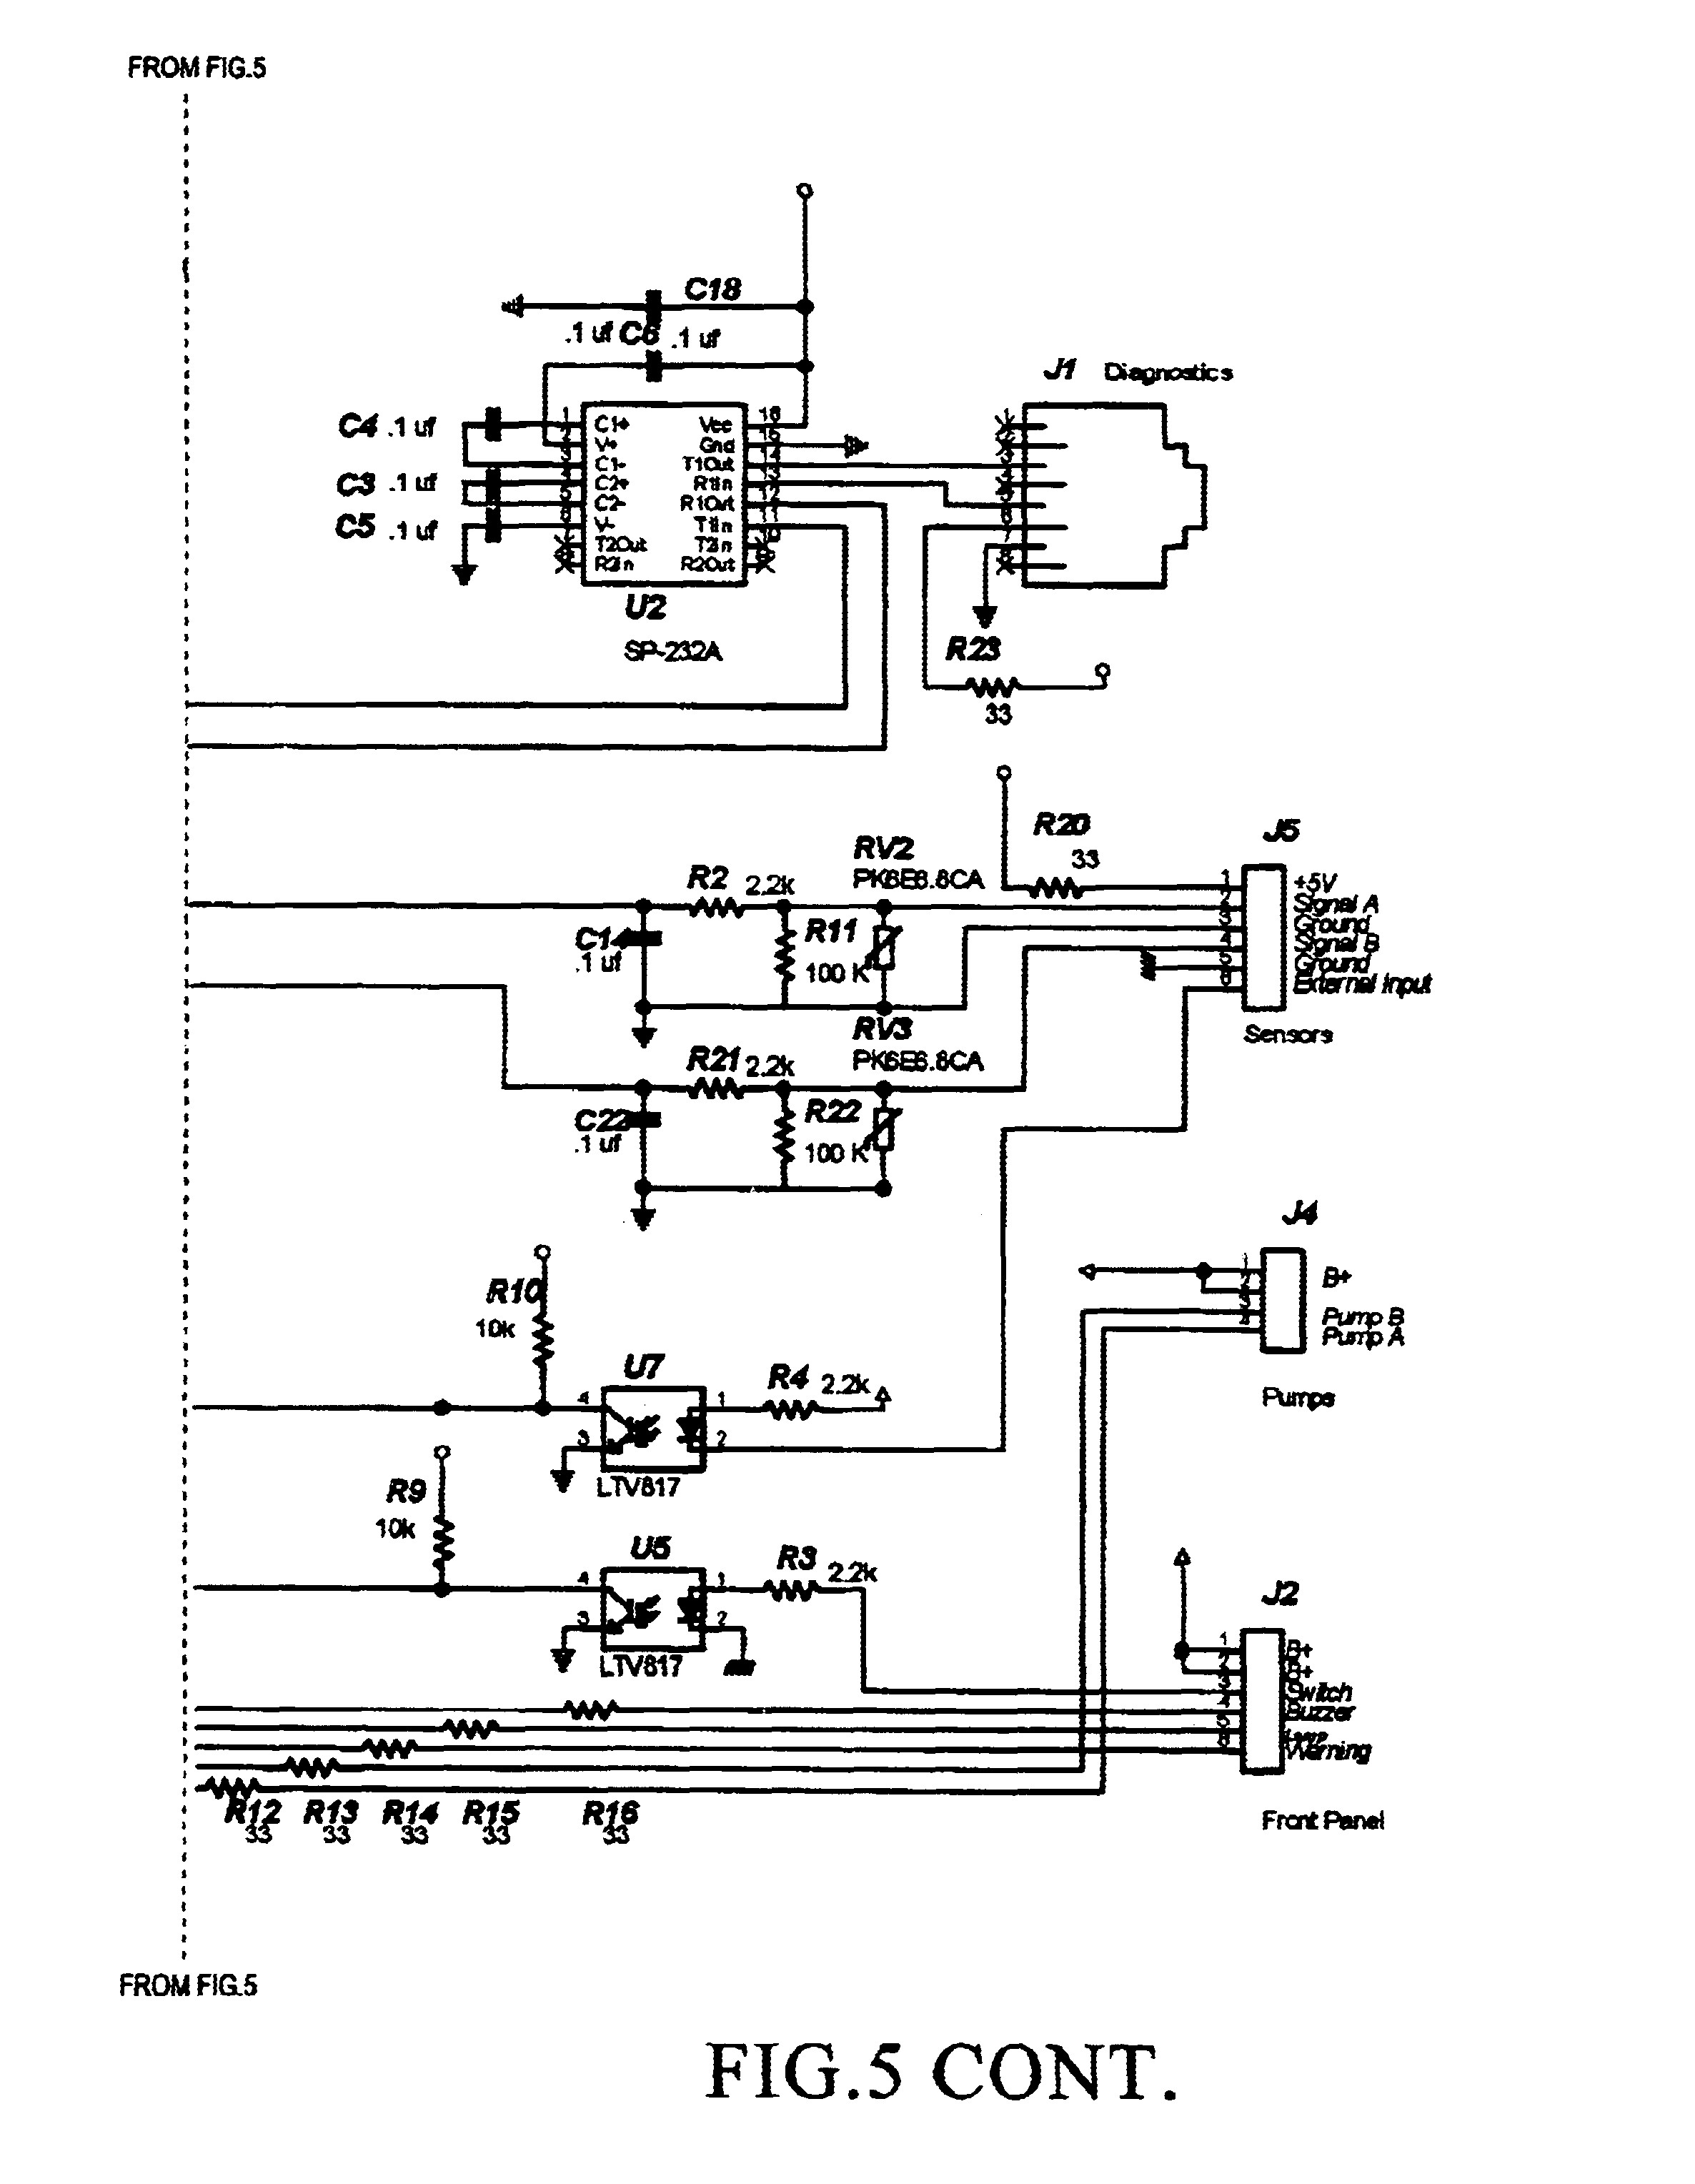 fill rite pump wiring diagram Download-Fill Rite Pump Wiring Diagram Patent Us Pneumatic Pump Control System And Method Drawing Fill Rite Fuel Wiring Diagram 1-l